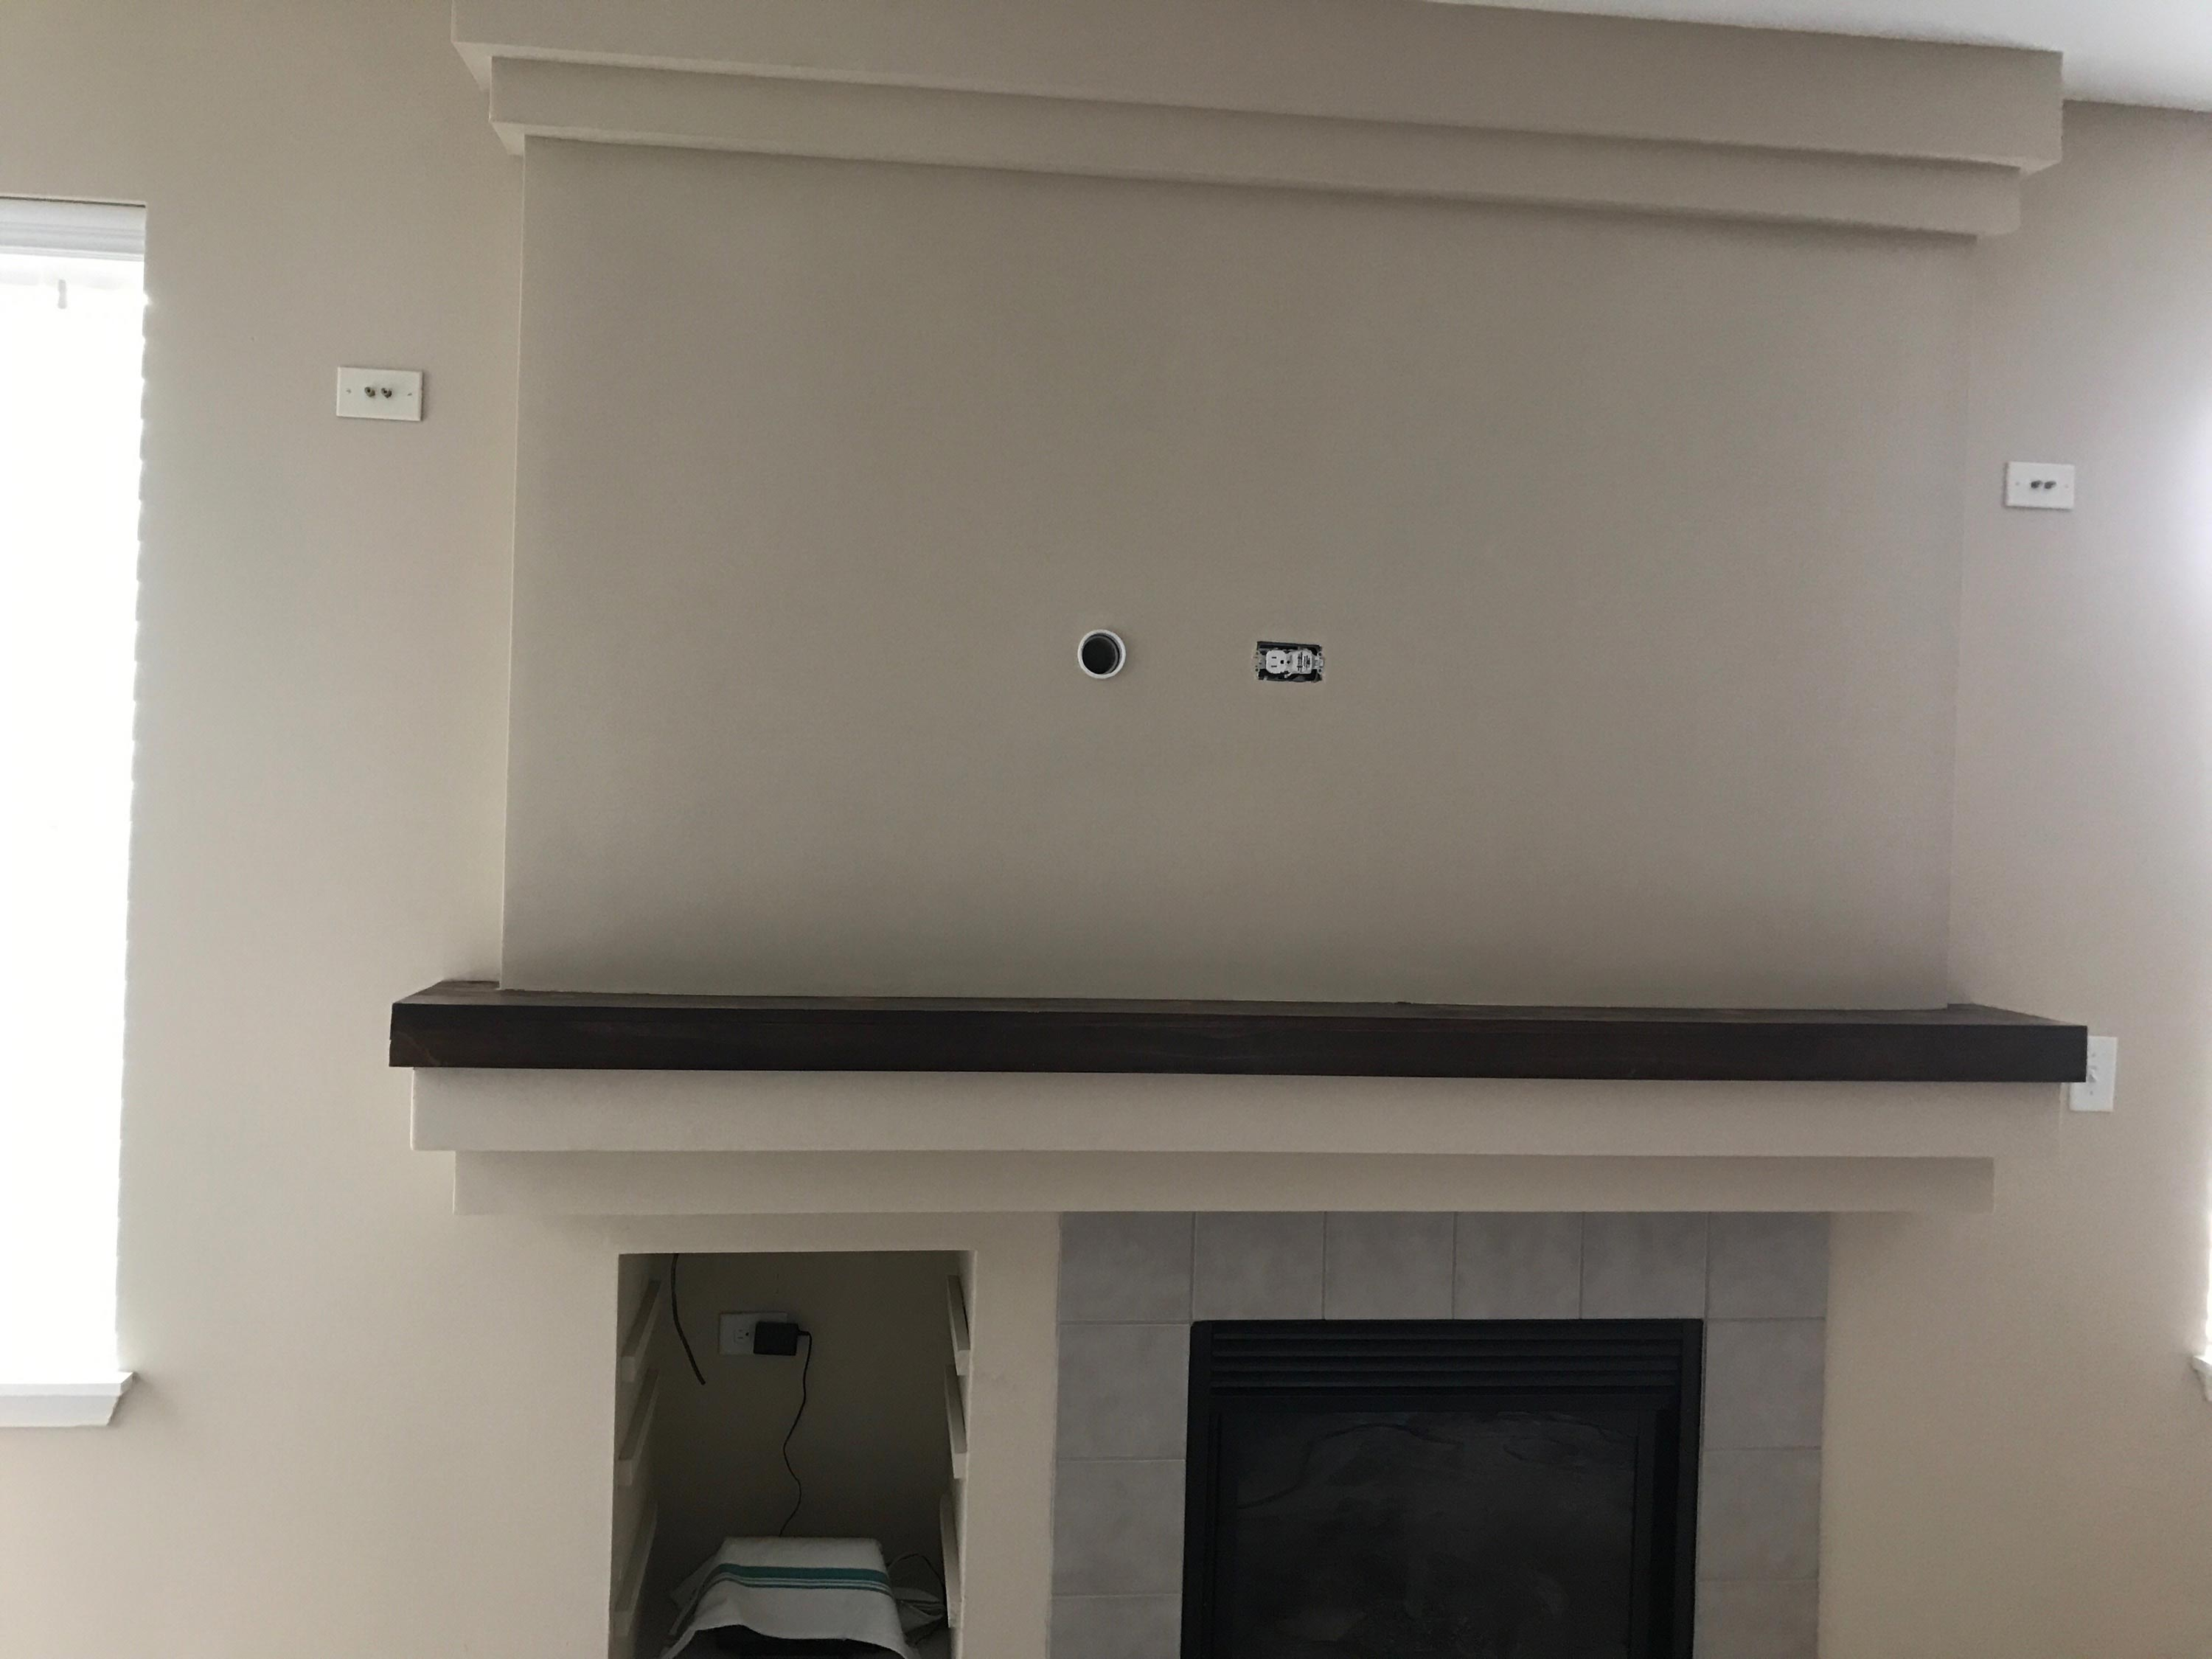 Wall Mounted Tv From Cubby Aurora Il Drywall Repair